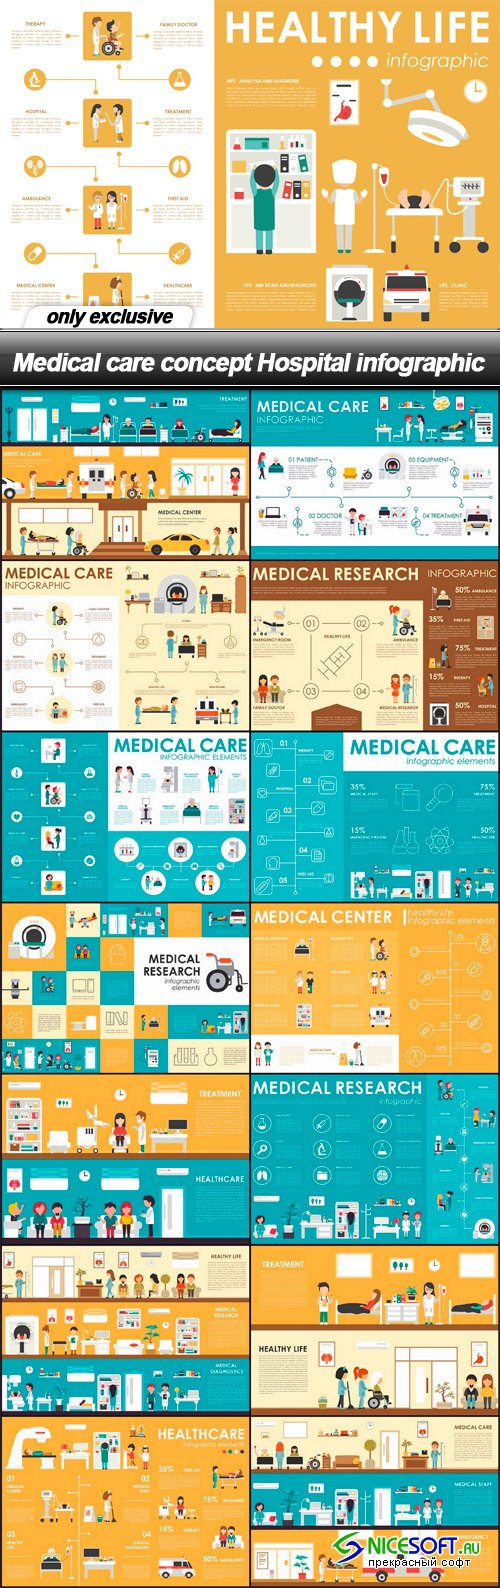 Medical care concept Hospital infographic